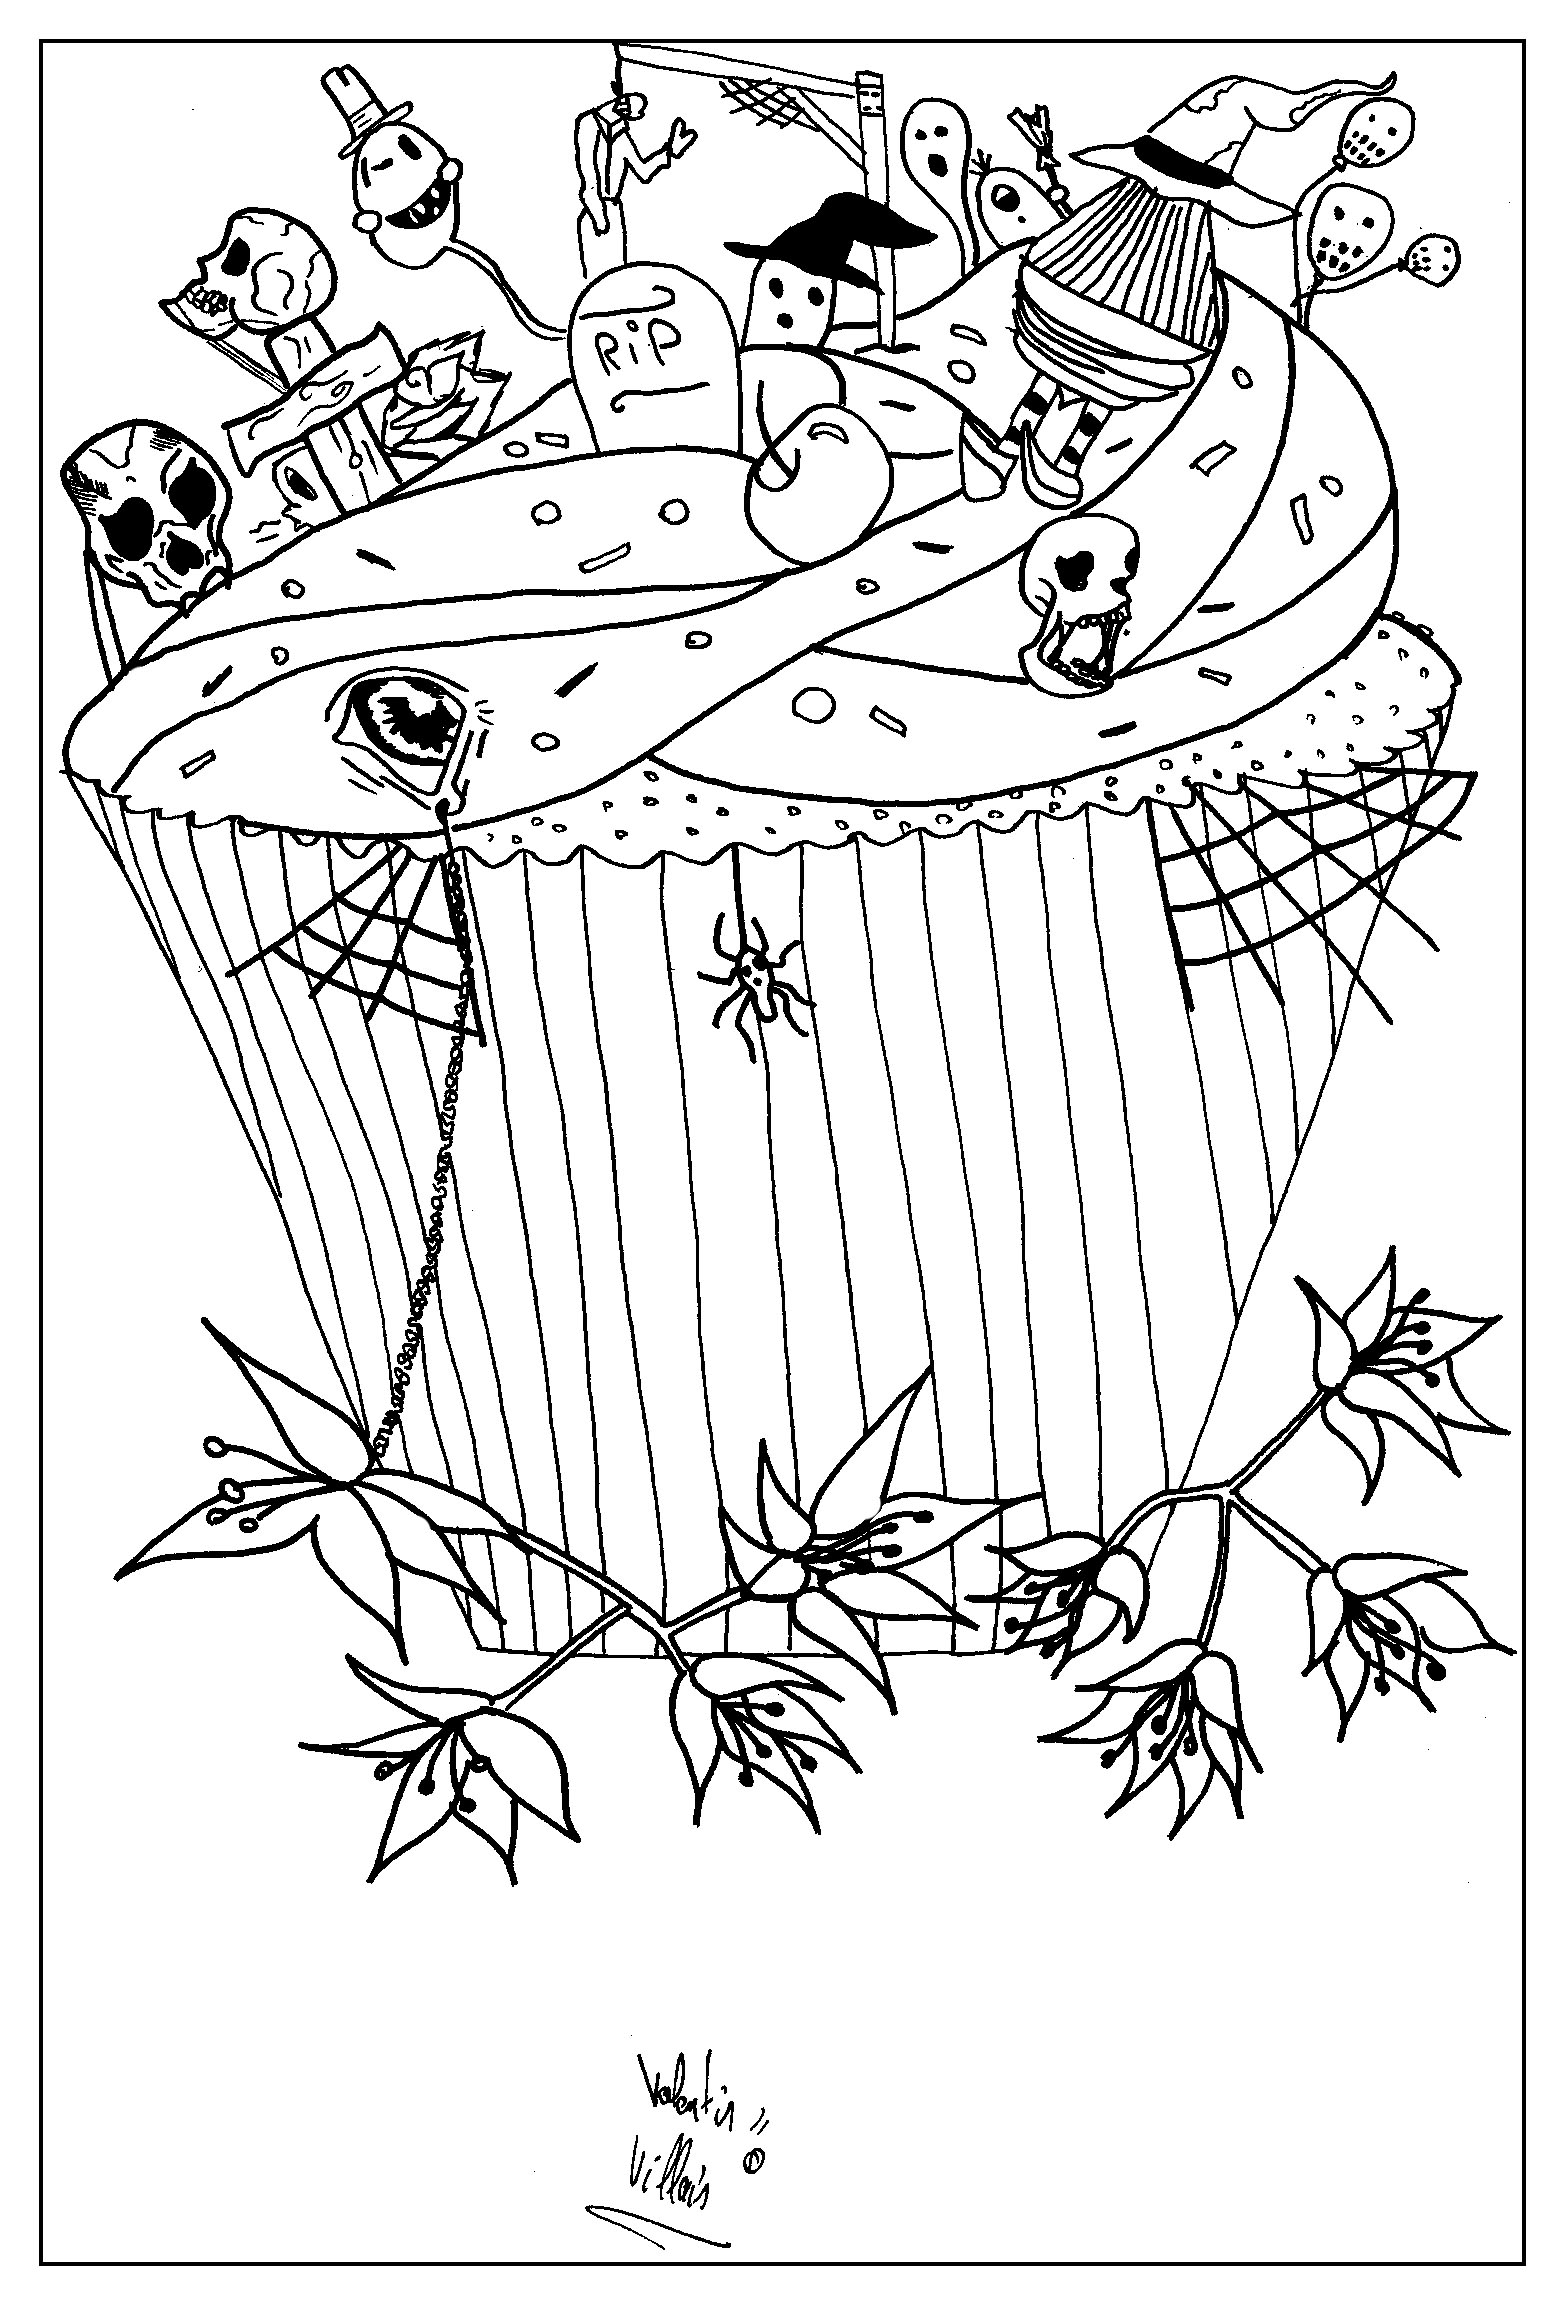 Cup Cakes Coloring pages for adults coloring page adult